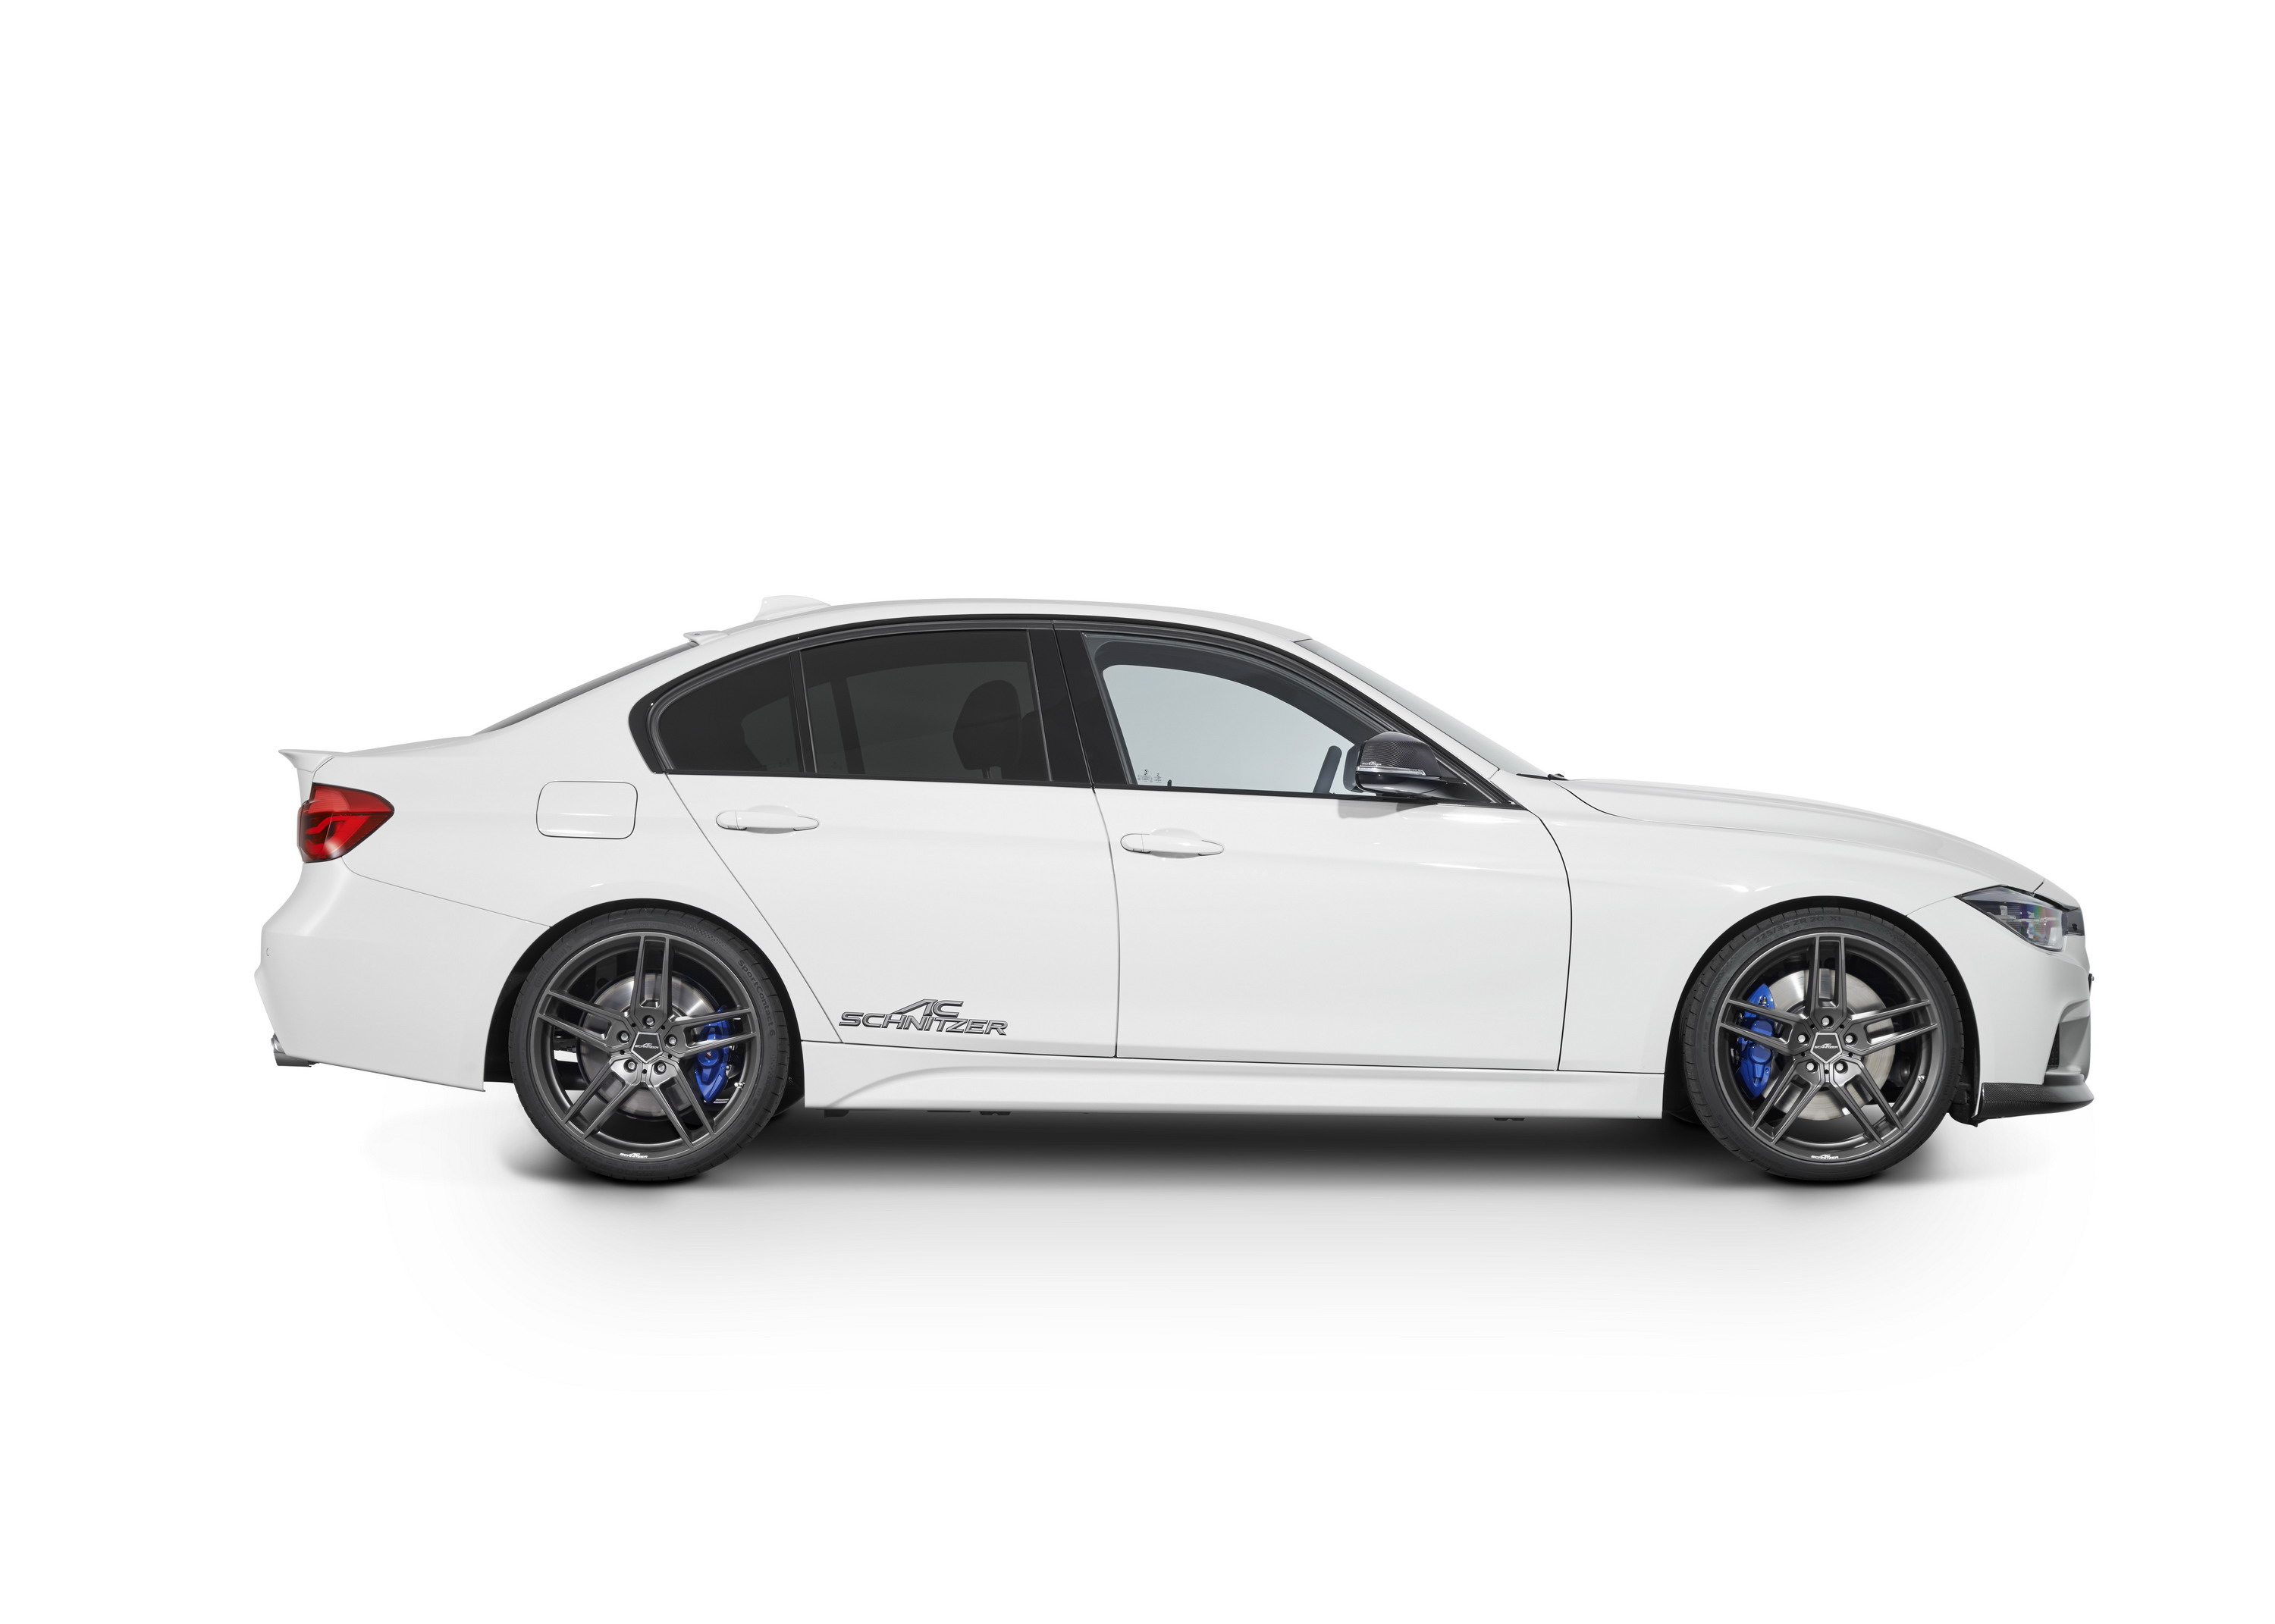 2015 Bmw 3 Series Lci By Ac Schnitzer Gallery 657738 Top